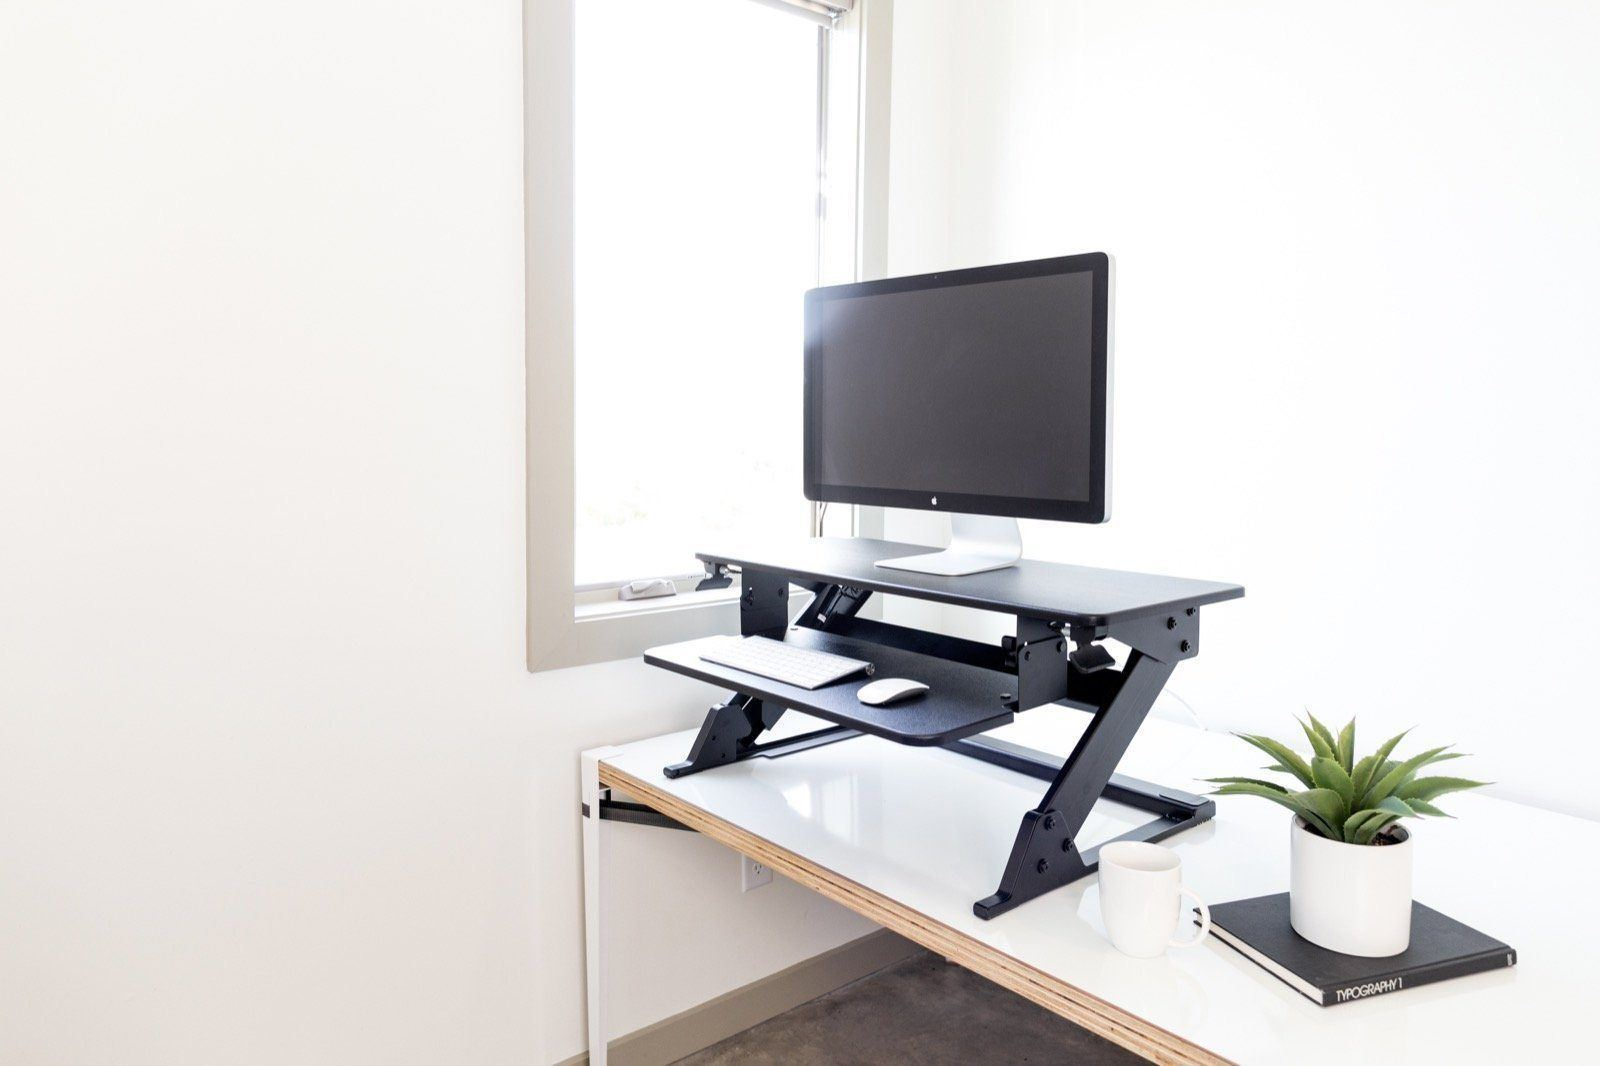 The Best Standing Desk for Local Government Employees Isn't Exactly What You'd Think